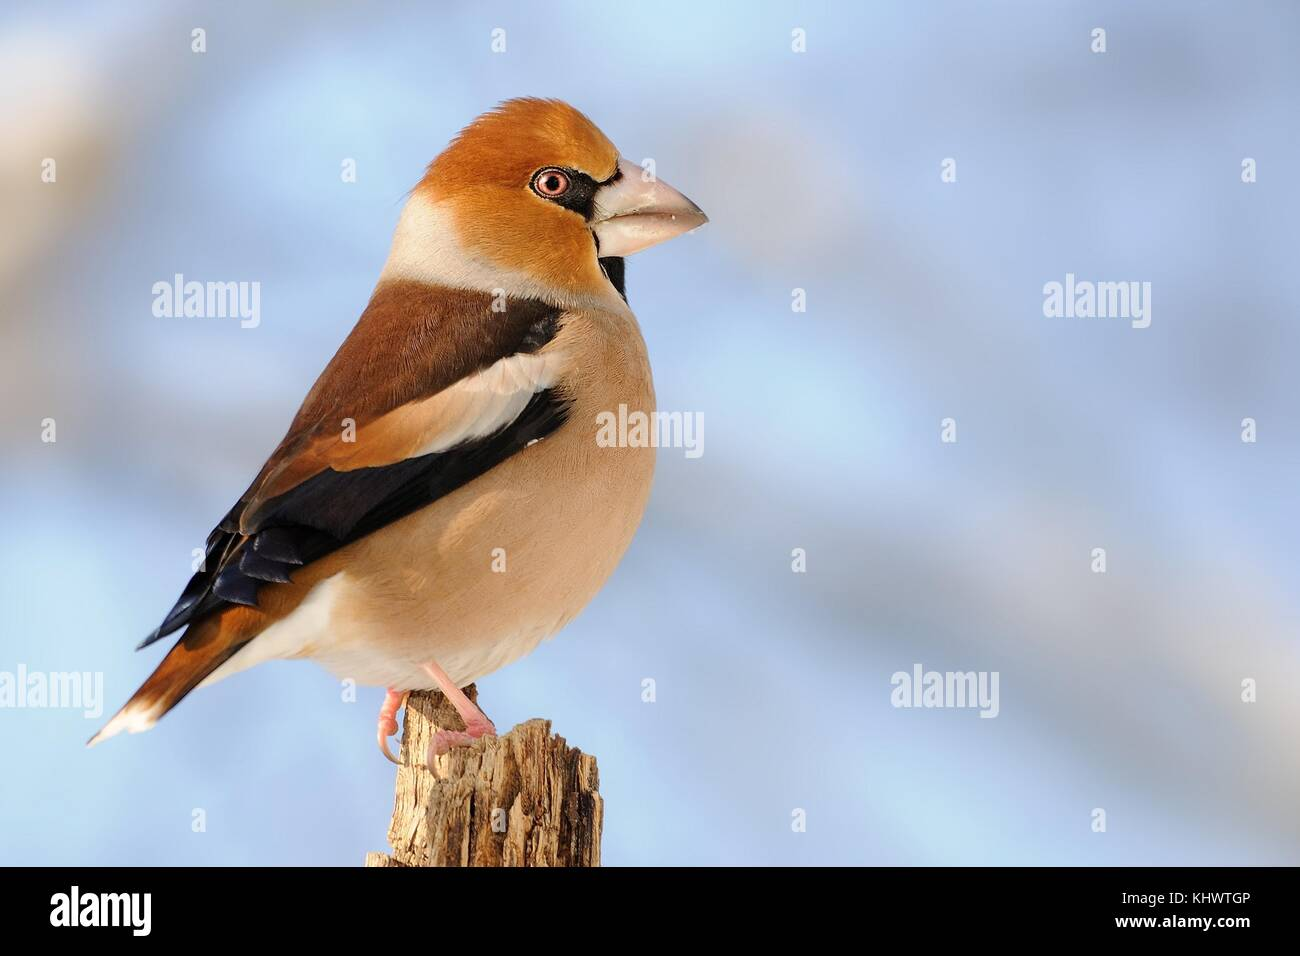 Hawfinch - Coccothraustes coccothraustes sitting on the branch in winter - Stock Image